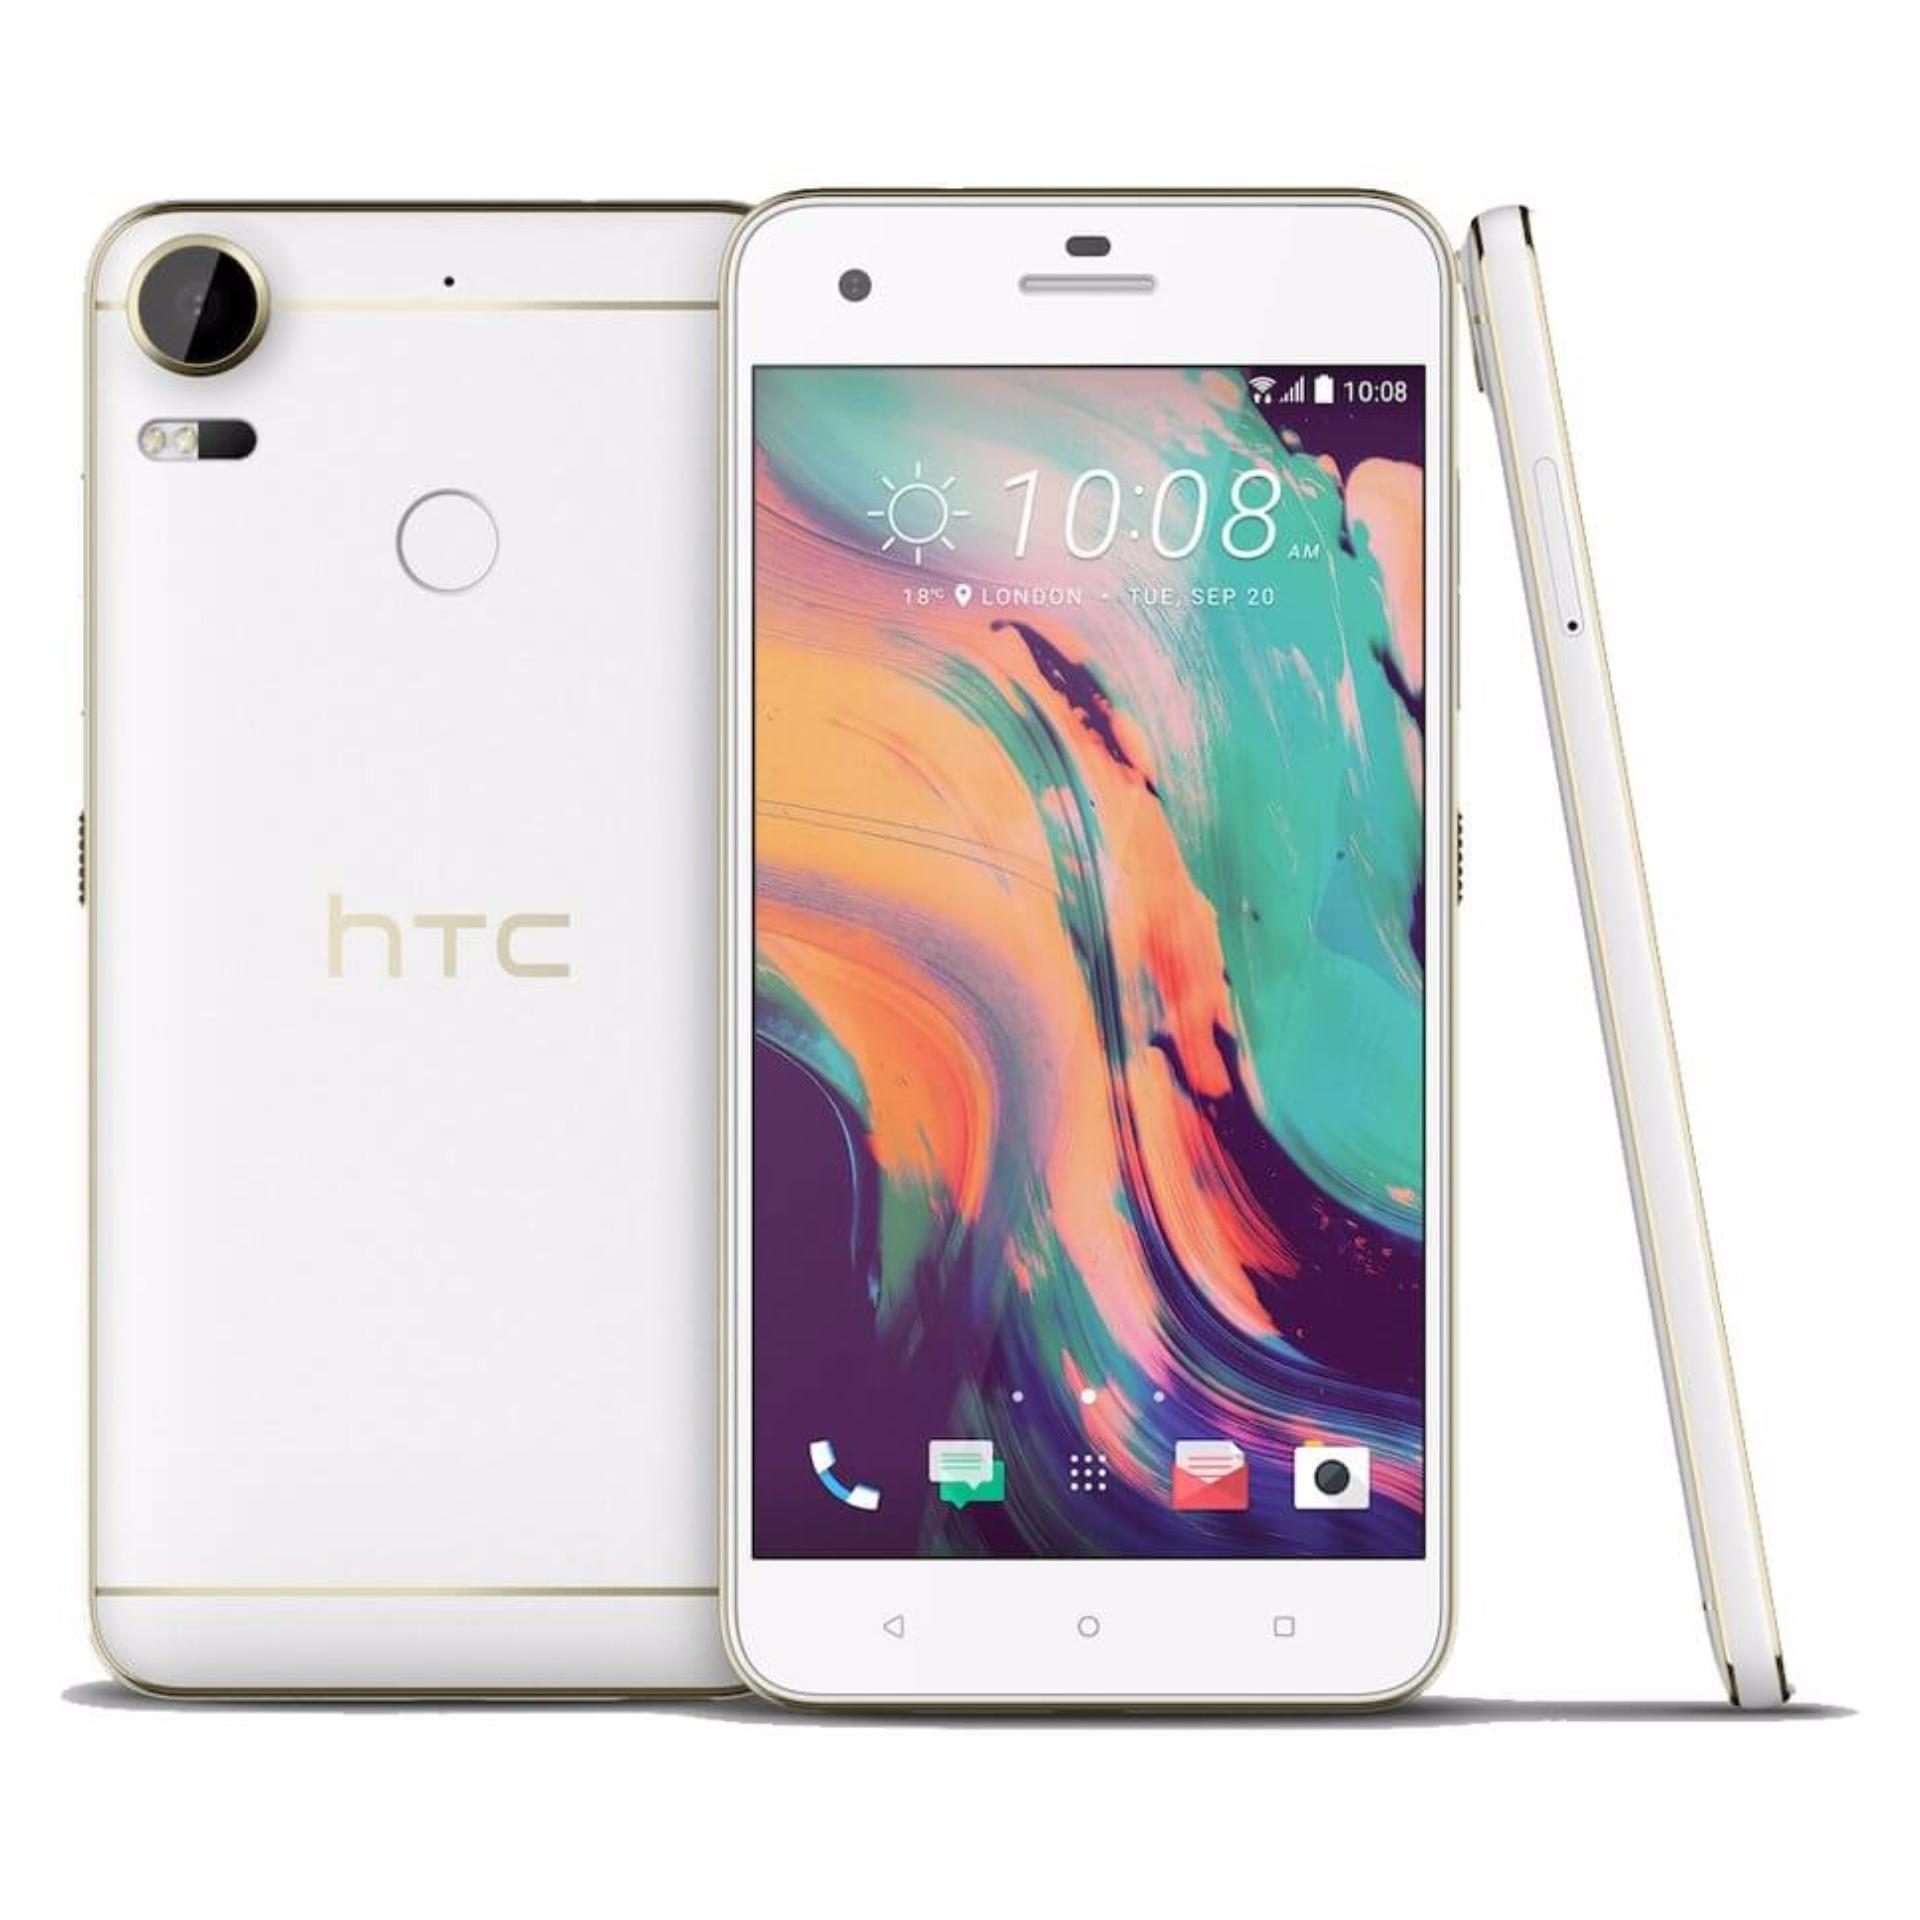 HTC Desire 10 Pro 4G 5.5 Inch 20MP 64GB (White) – Local Set with 1 year Warranty